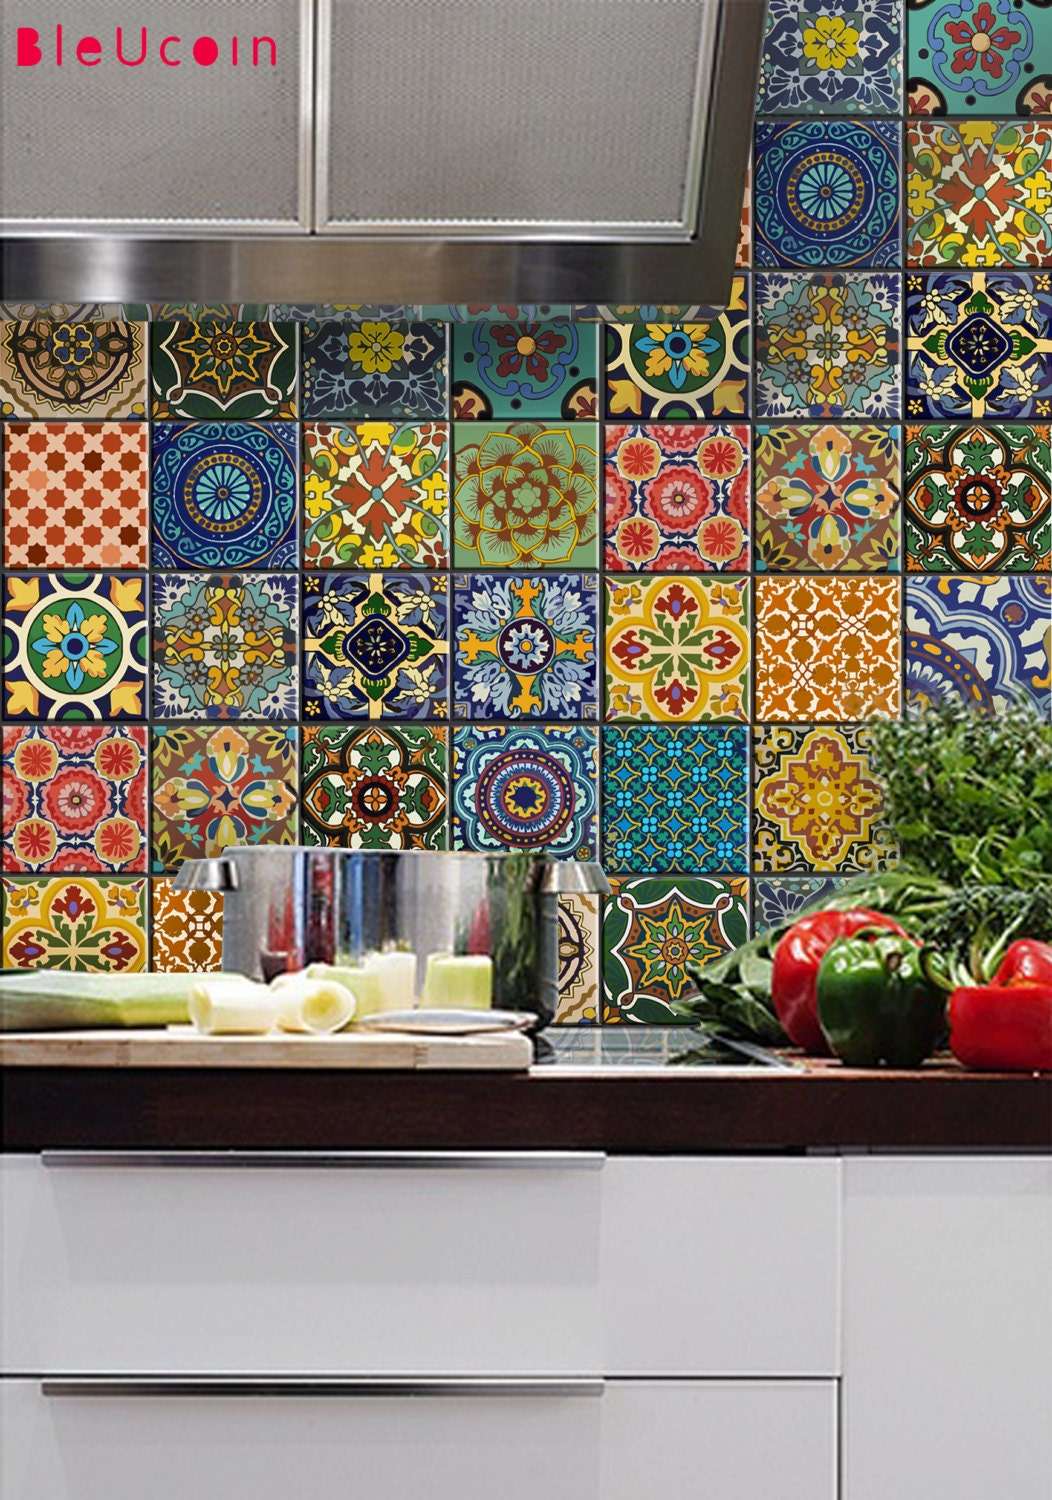 Tile decal mexican talavera style 22 designs x 2 by bleucoin for Colorful kitchen wall decor